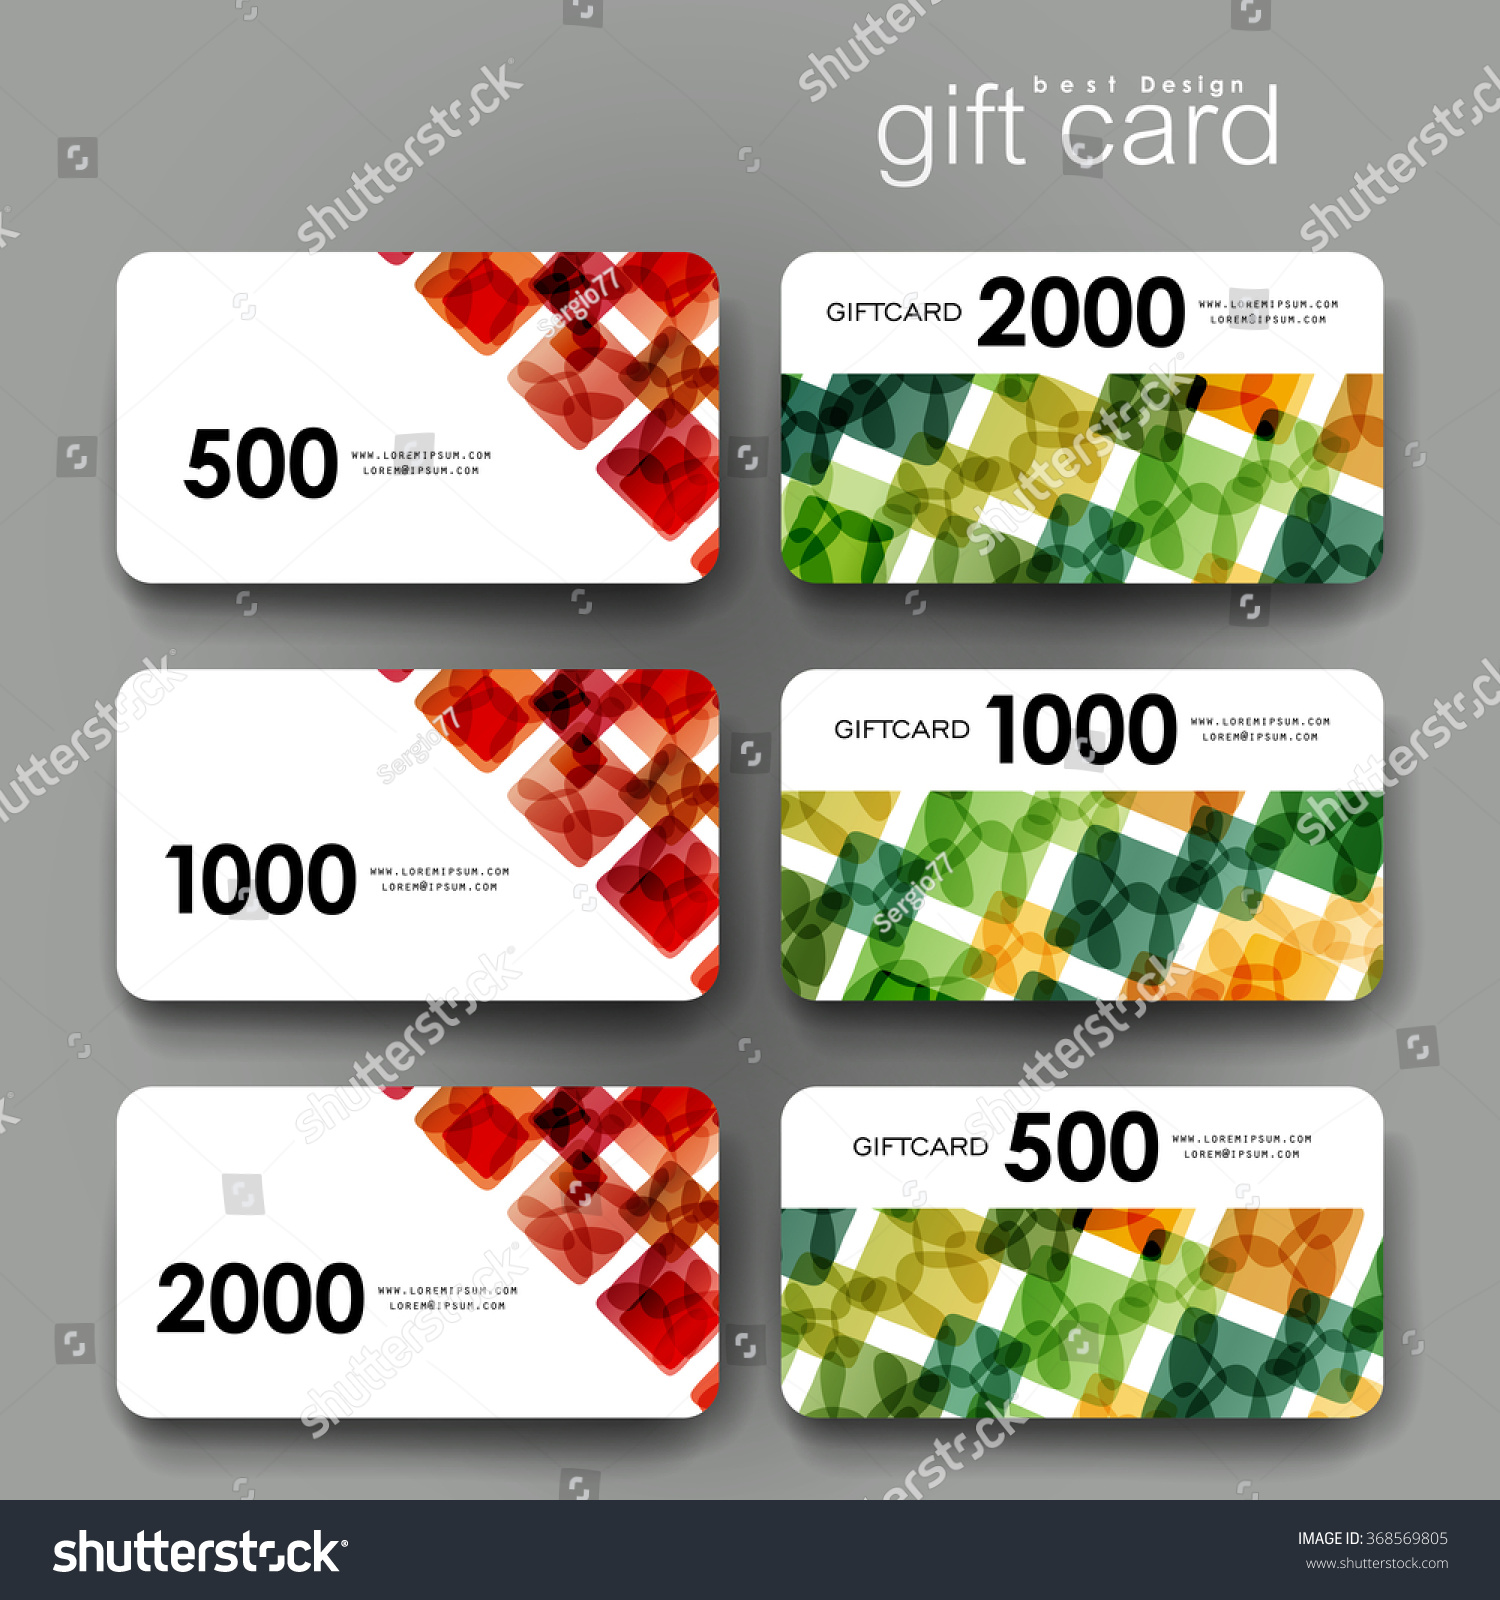 Design of discount card - Gift Coupon Discount Card Template With Abstract Background Creative Layout Design